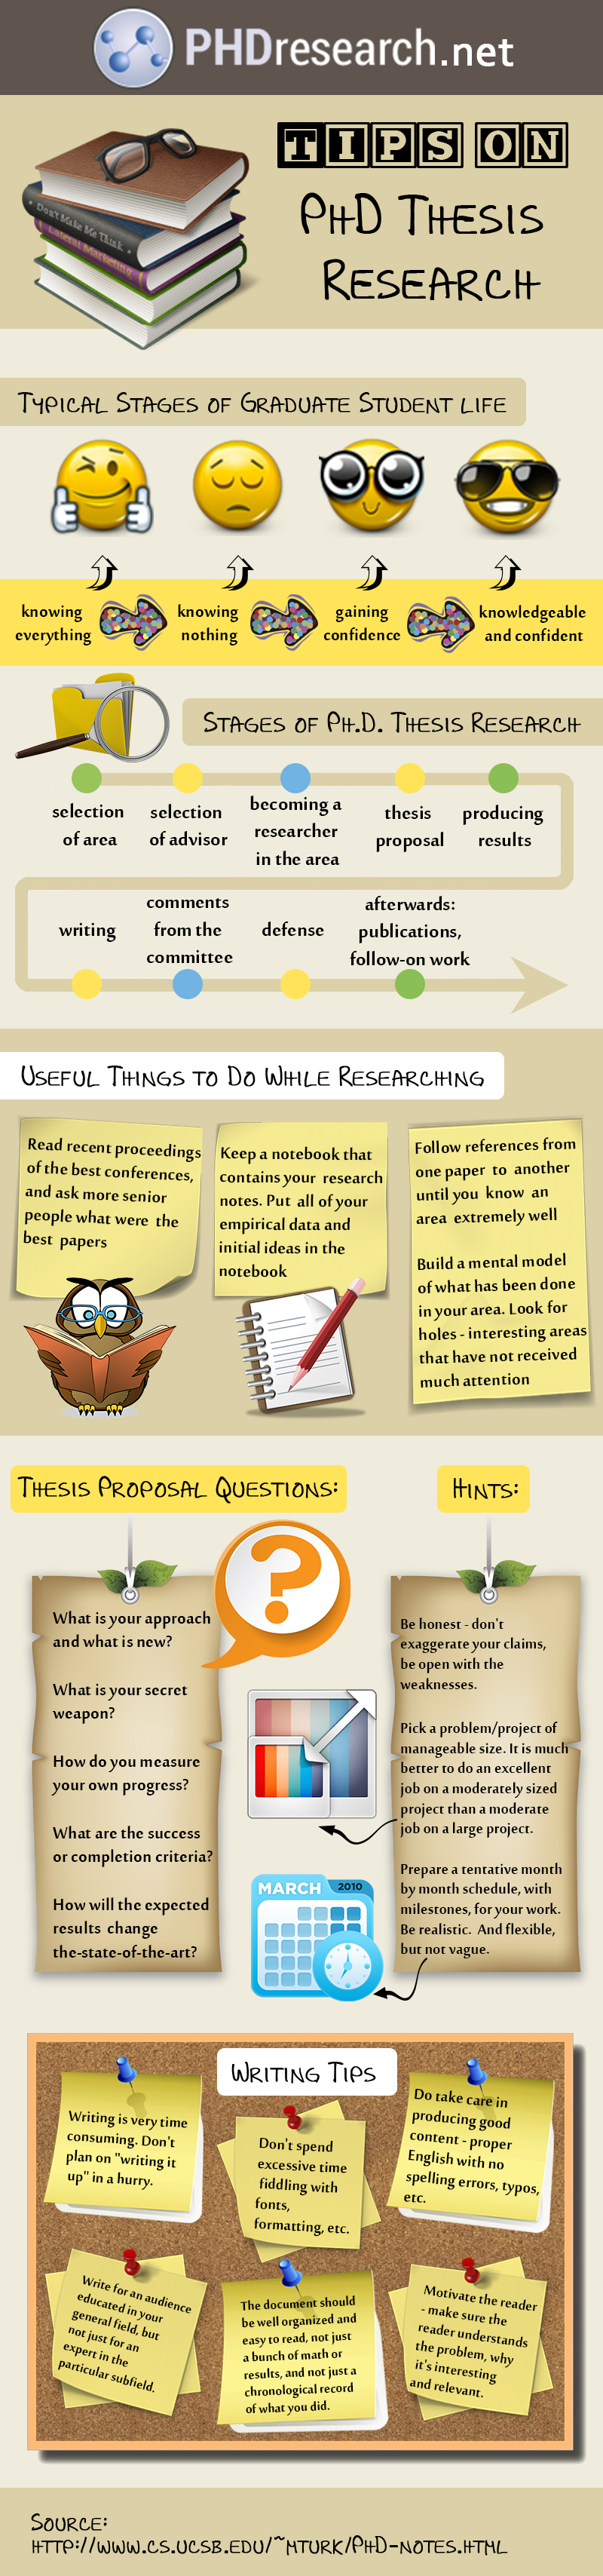 tips on phd thesis research